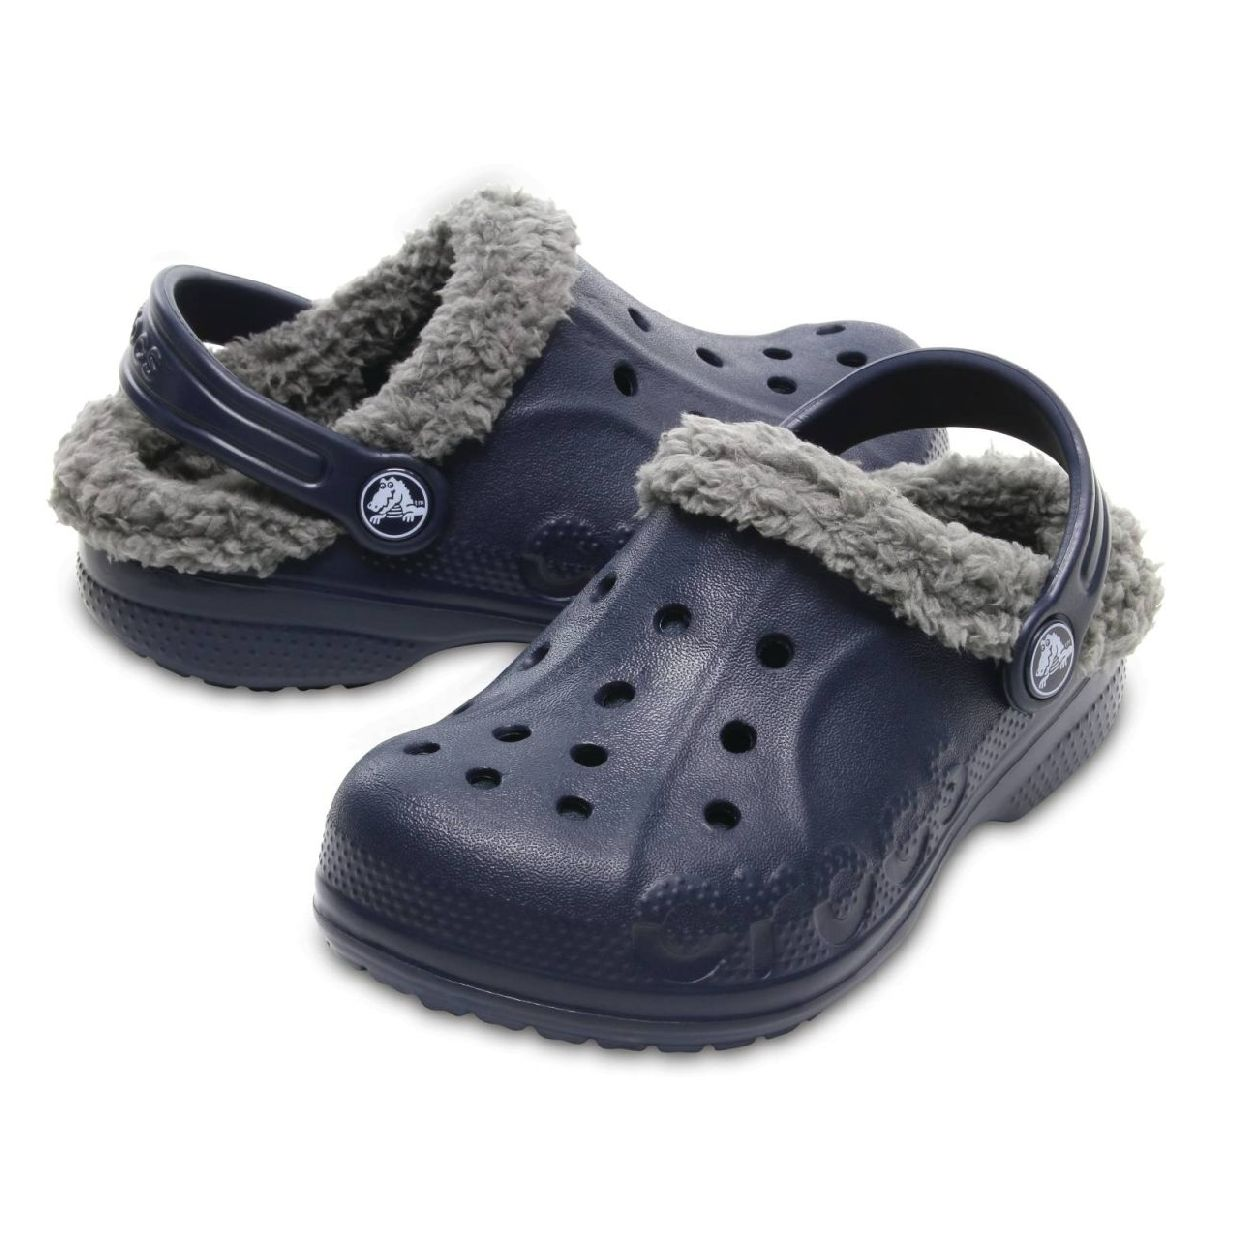 Crocs Bay Lined Kids Clogs Hausschuhe Synthetik Kinder Schuhe FS18EOL